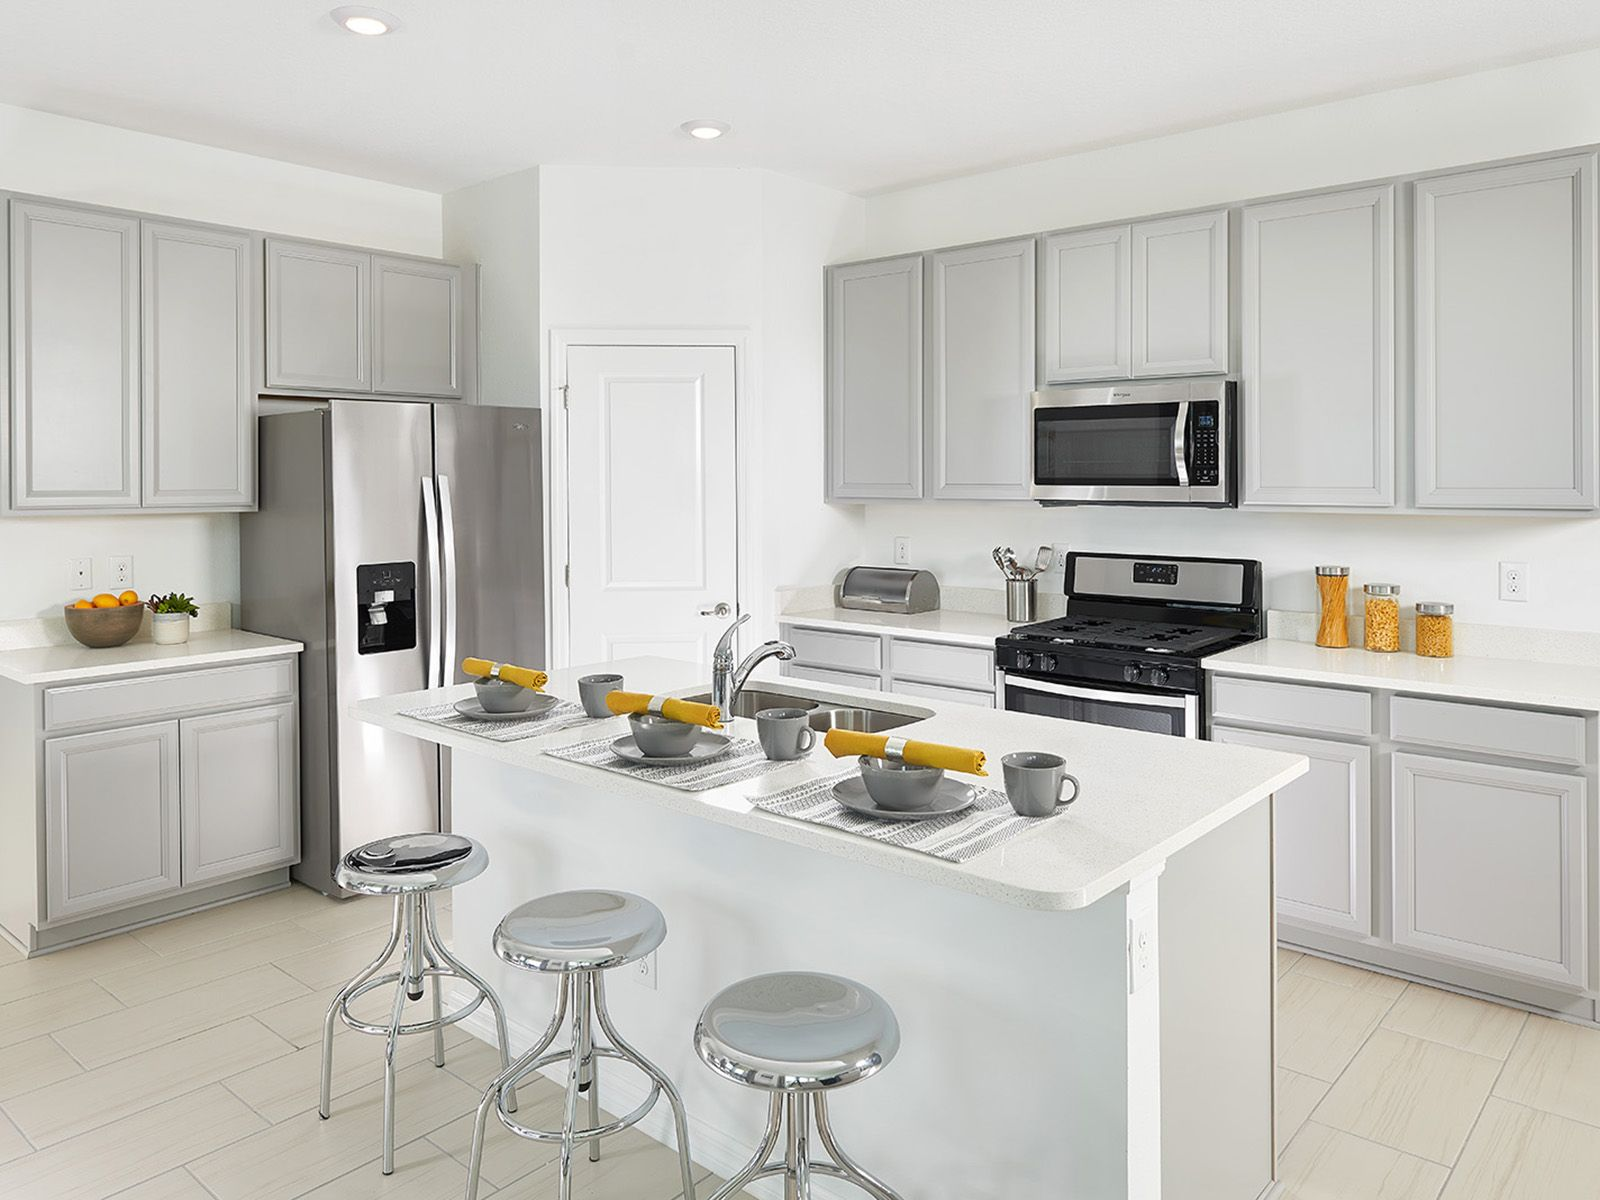 Kitchen featured in the Juniper By Meritage Homes in Tampa-St. Petersburg, FL